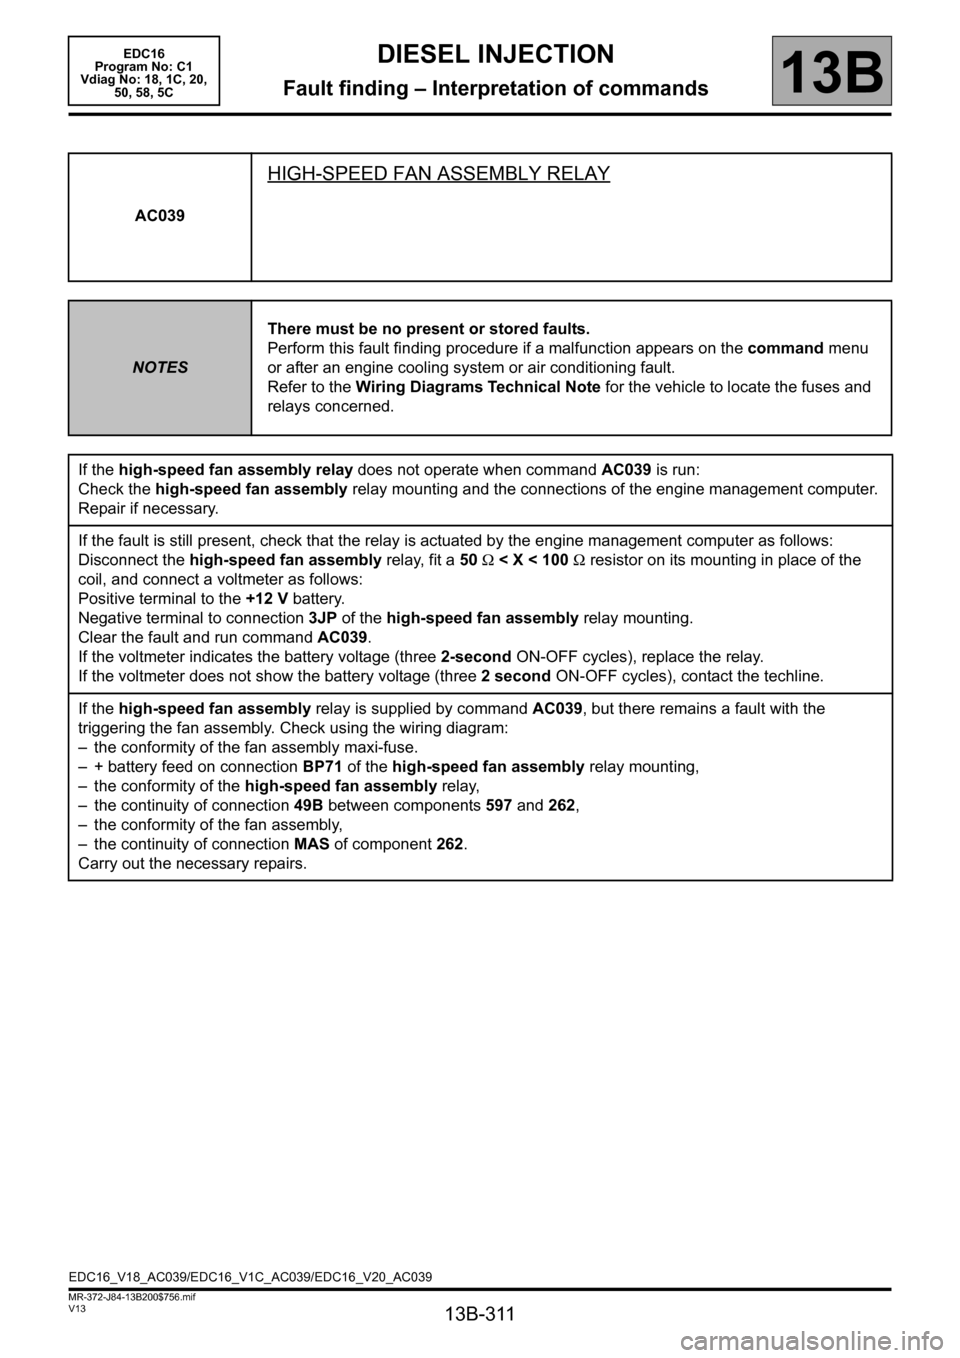 RENAULT SCENIC 2011 J95 / 3.G Engine And Peripherals EDC16 Workshop Manual, Page 311